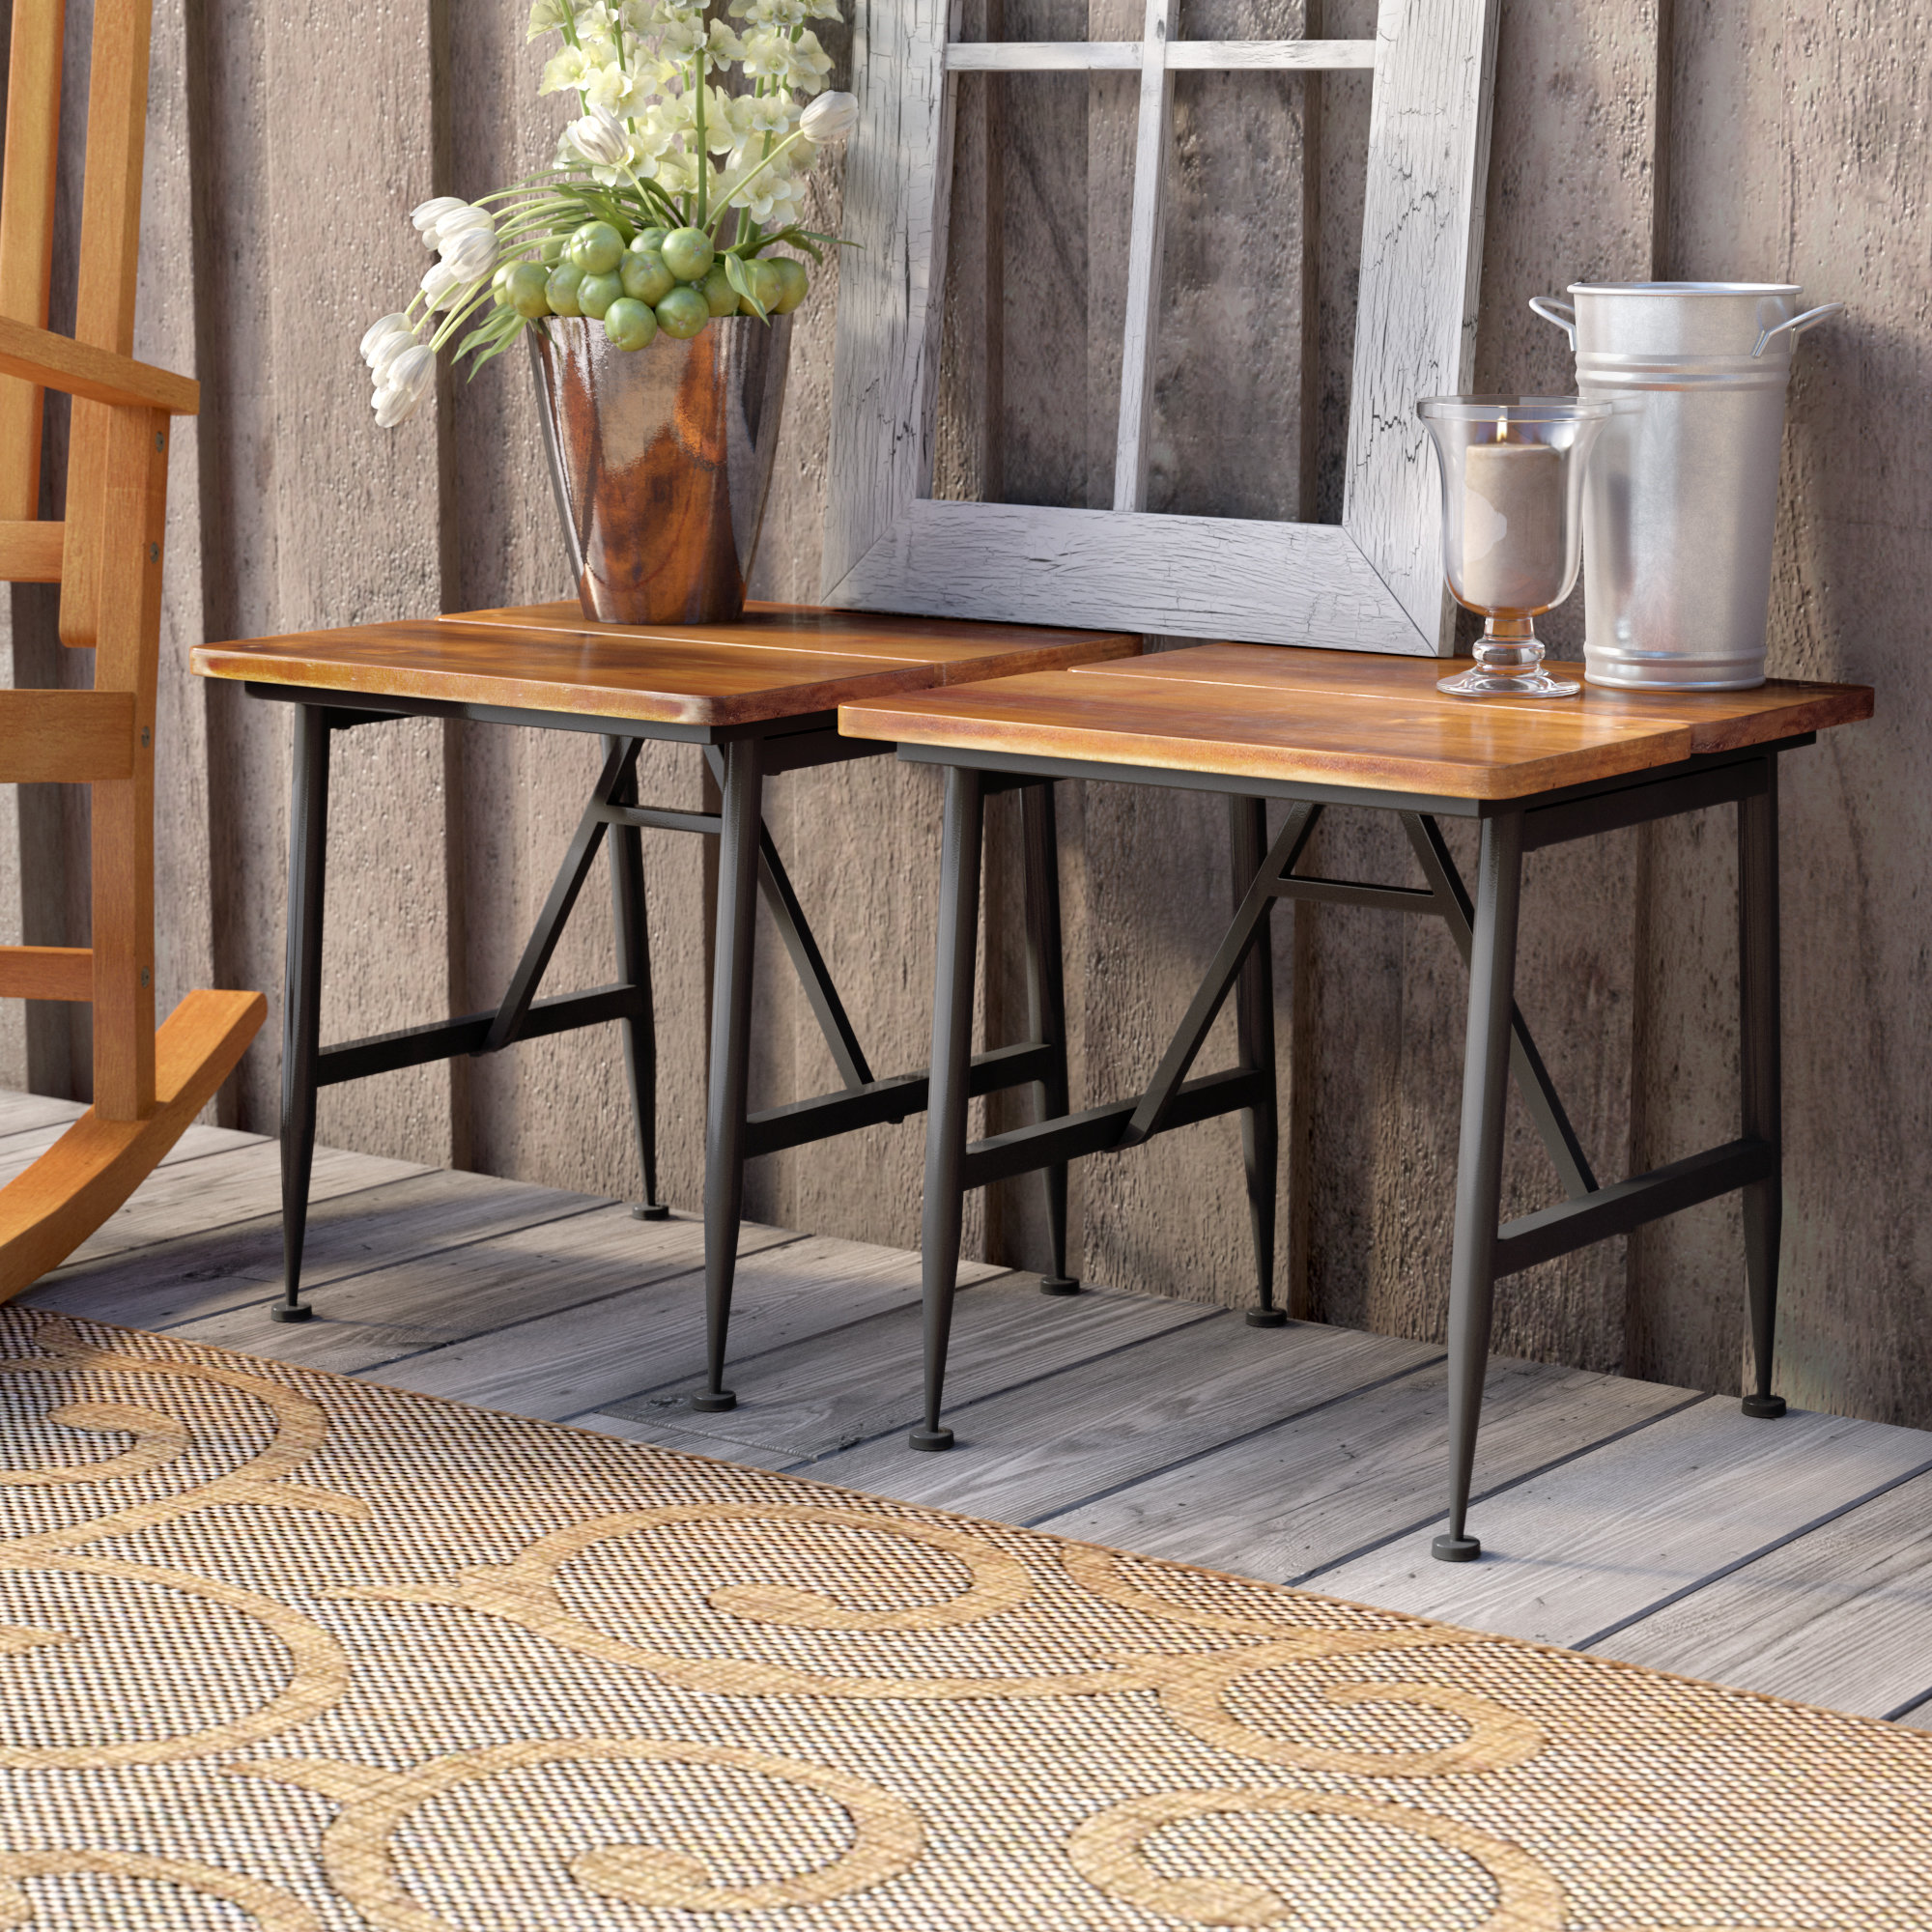 gracie oaks frankston outdoor wood accent table set reviews patchen end living room furniture sets clearance bronze patio side foyer bench brass base ashley glass teal bedroom